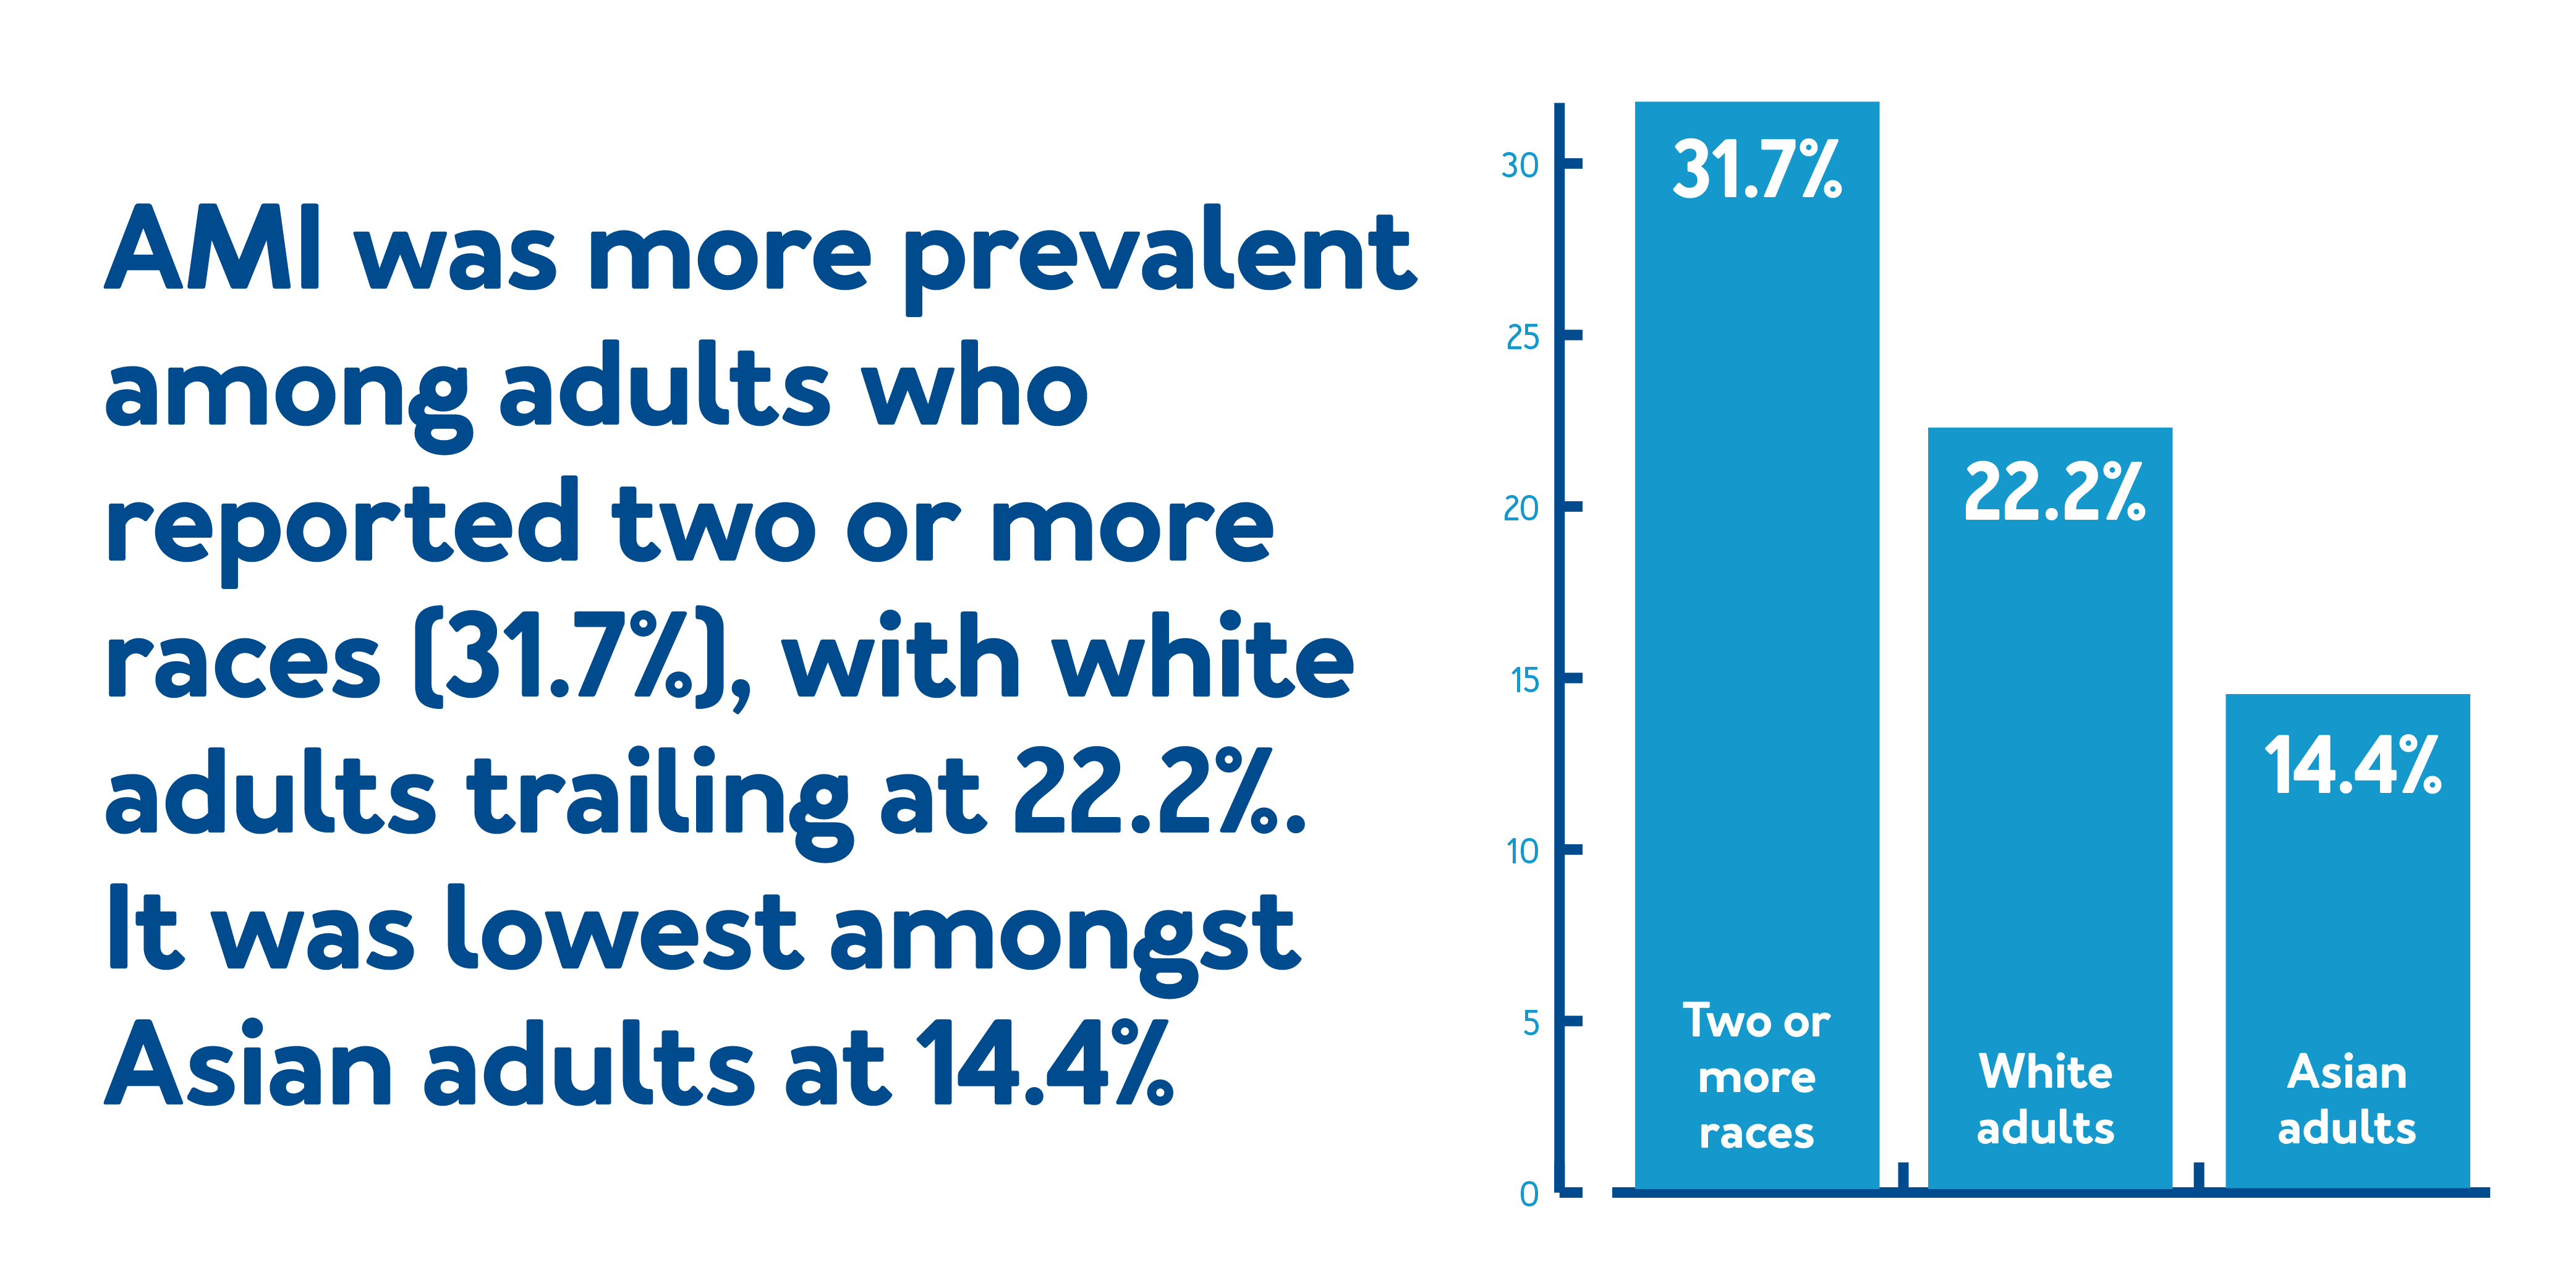 AMI was more prevalent among adults who reported two or more races (31.7%), with white adults trailing at 22.2%. It was lowest amongst Asian adults at 14.4%.